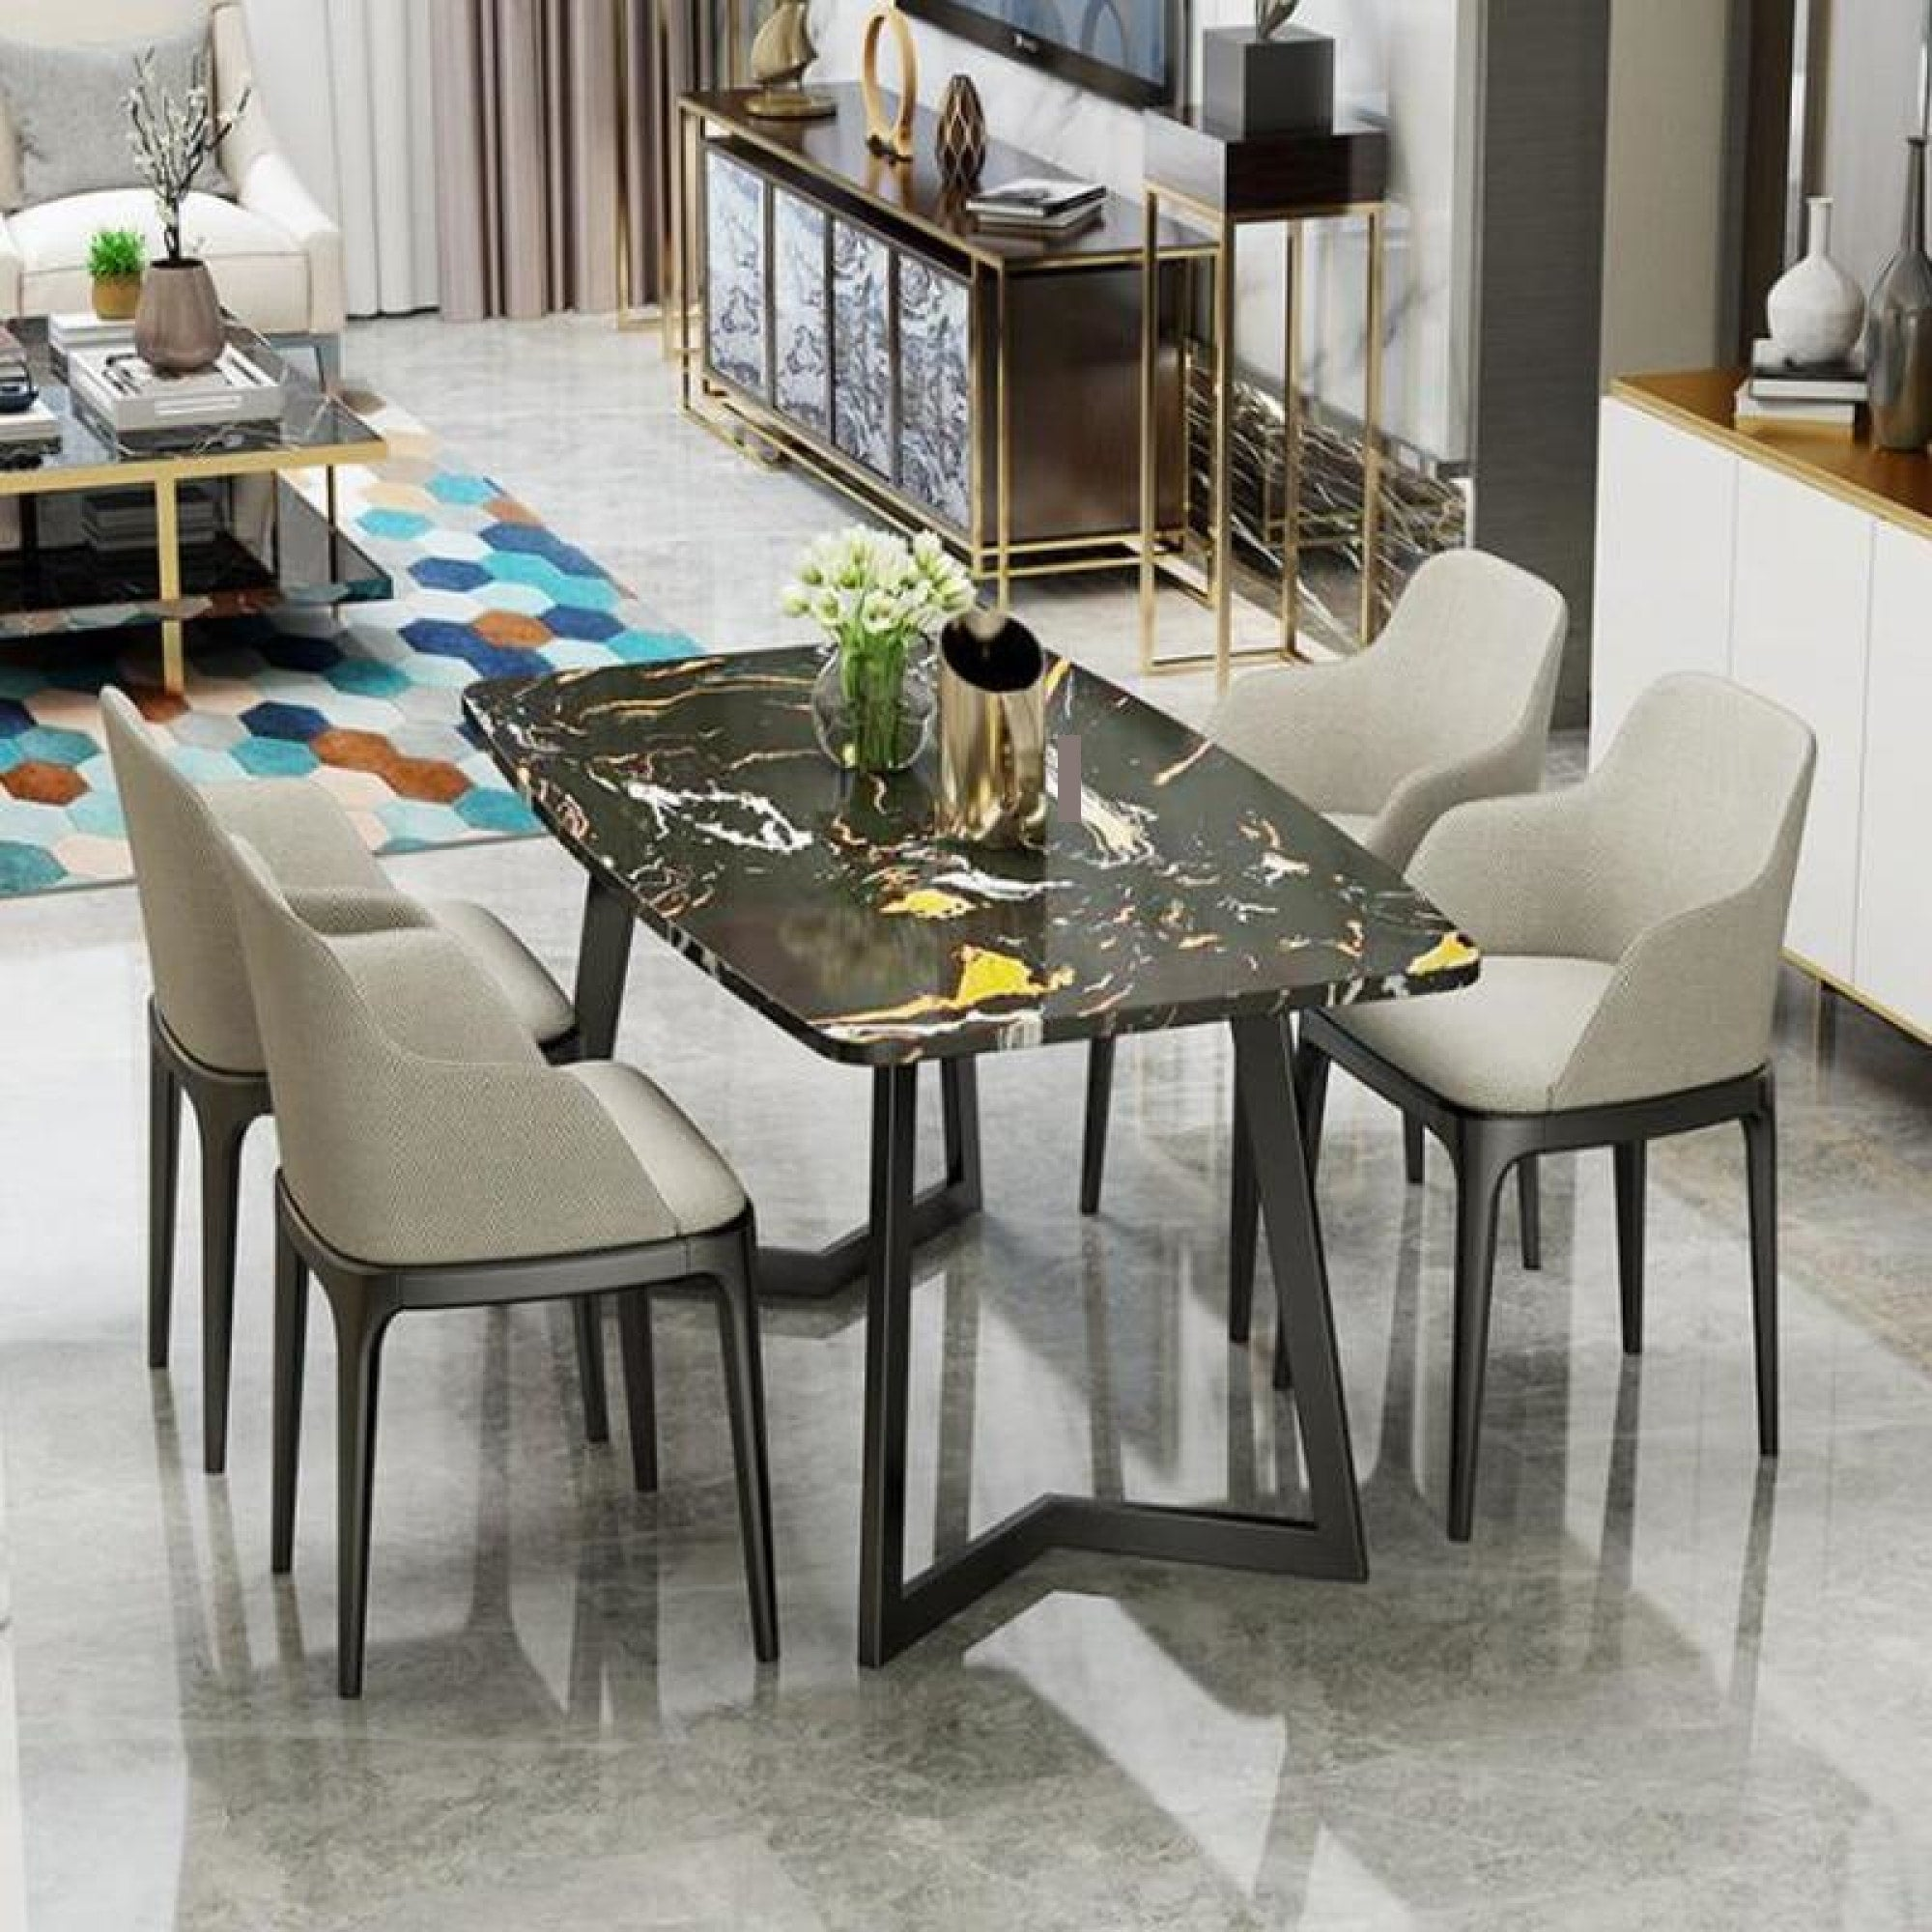 Nordic Marble Stylish Dining Or Coffee Table With Chairs My Aashis